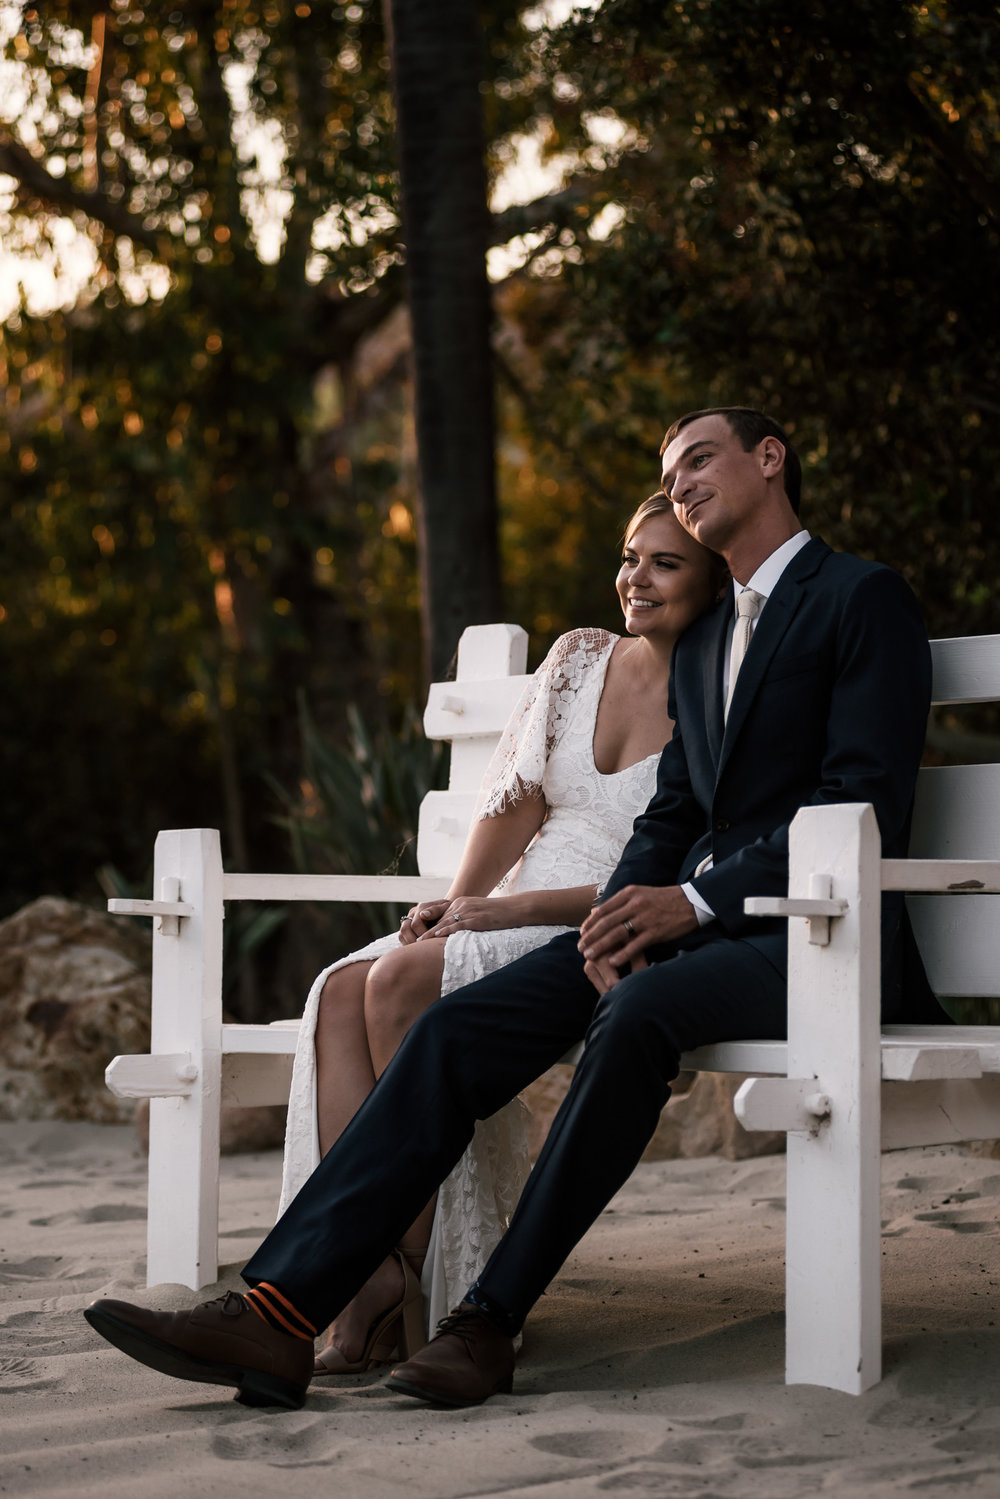 newly weds sit on a bench in the sand and enjoy the sunset captured by photographer during romantic wedding at the historic Leo Carrillo Ranch in Carlsbad California